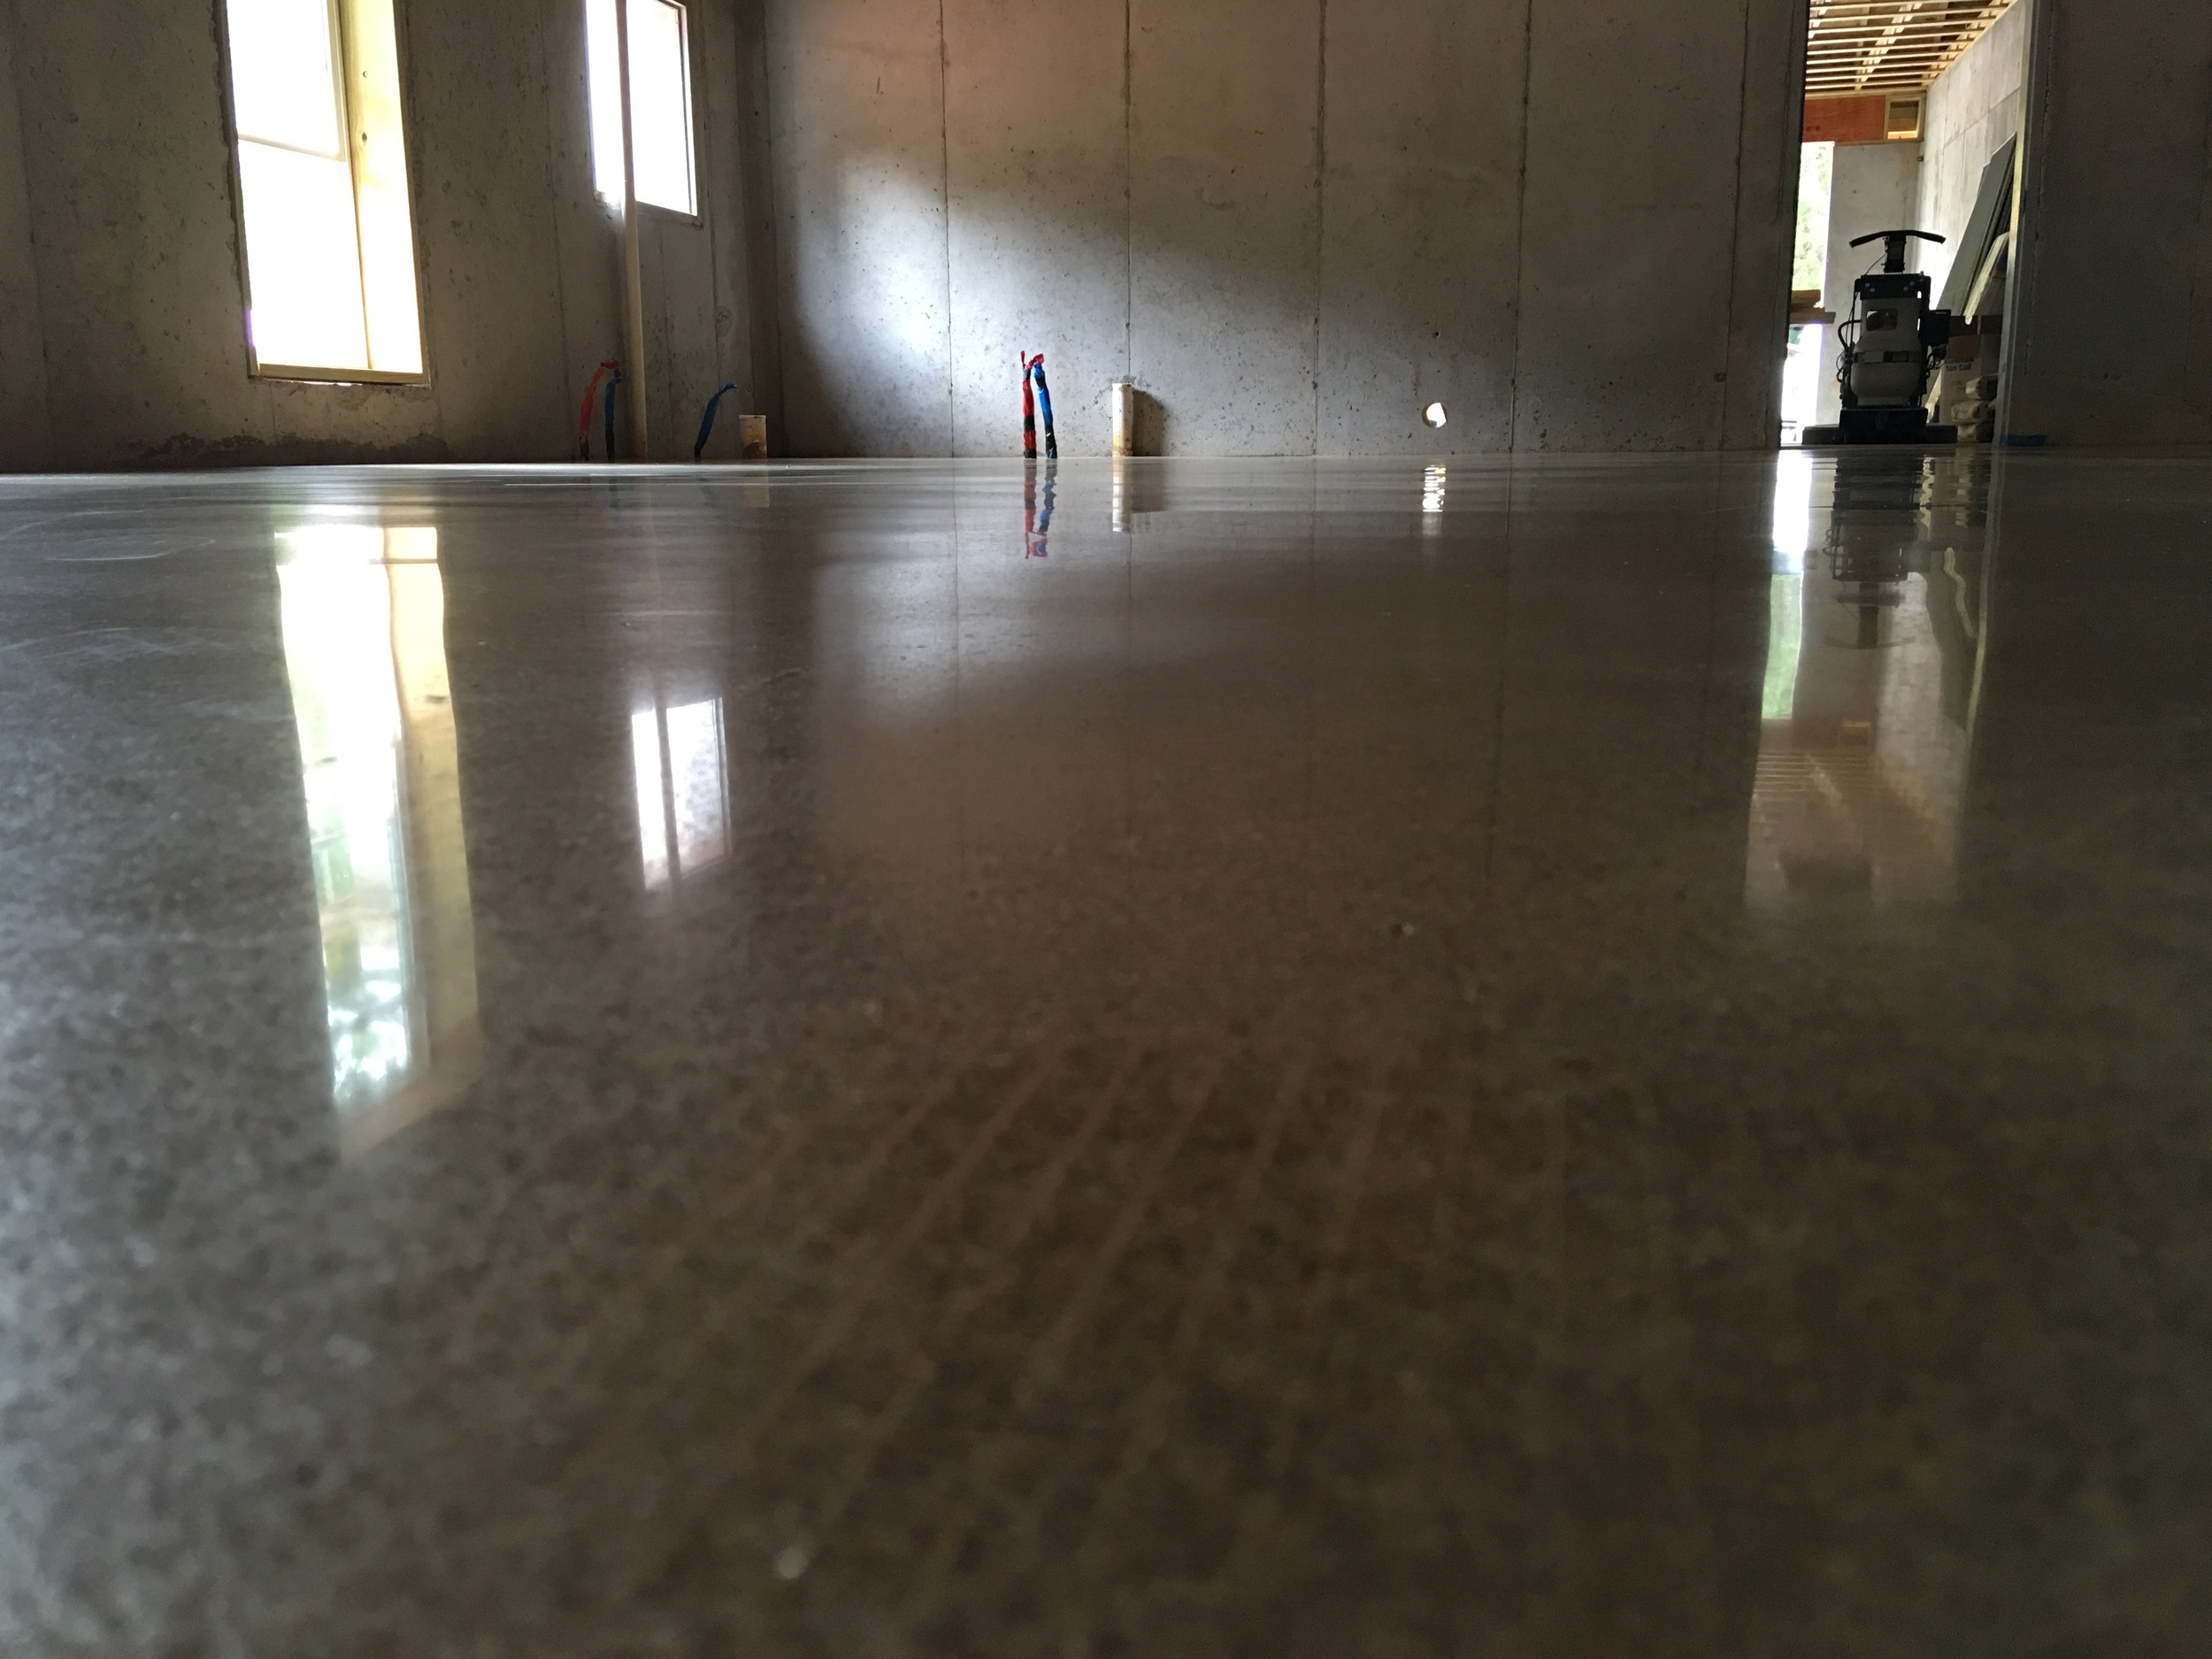 3,000 Grit Polished Bronze and Espresso Colored Floor